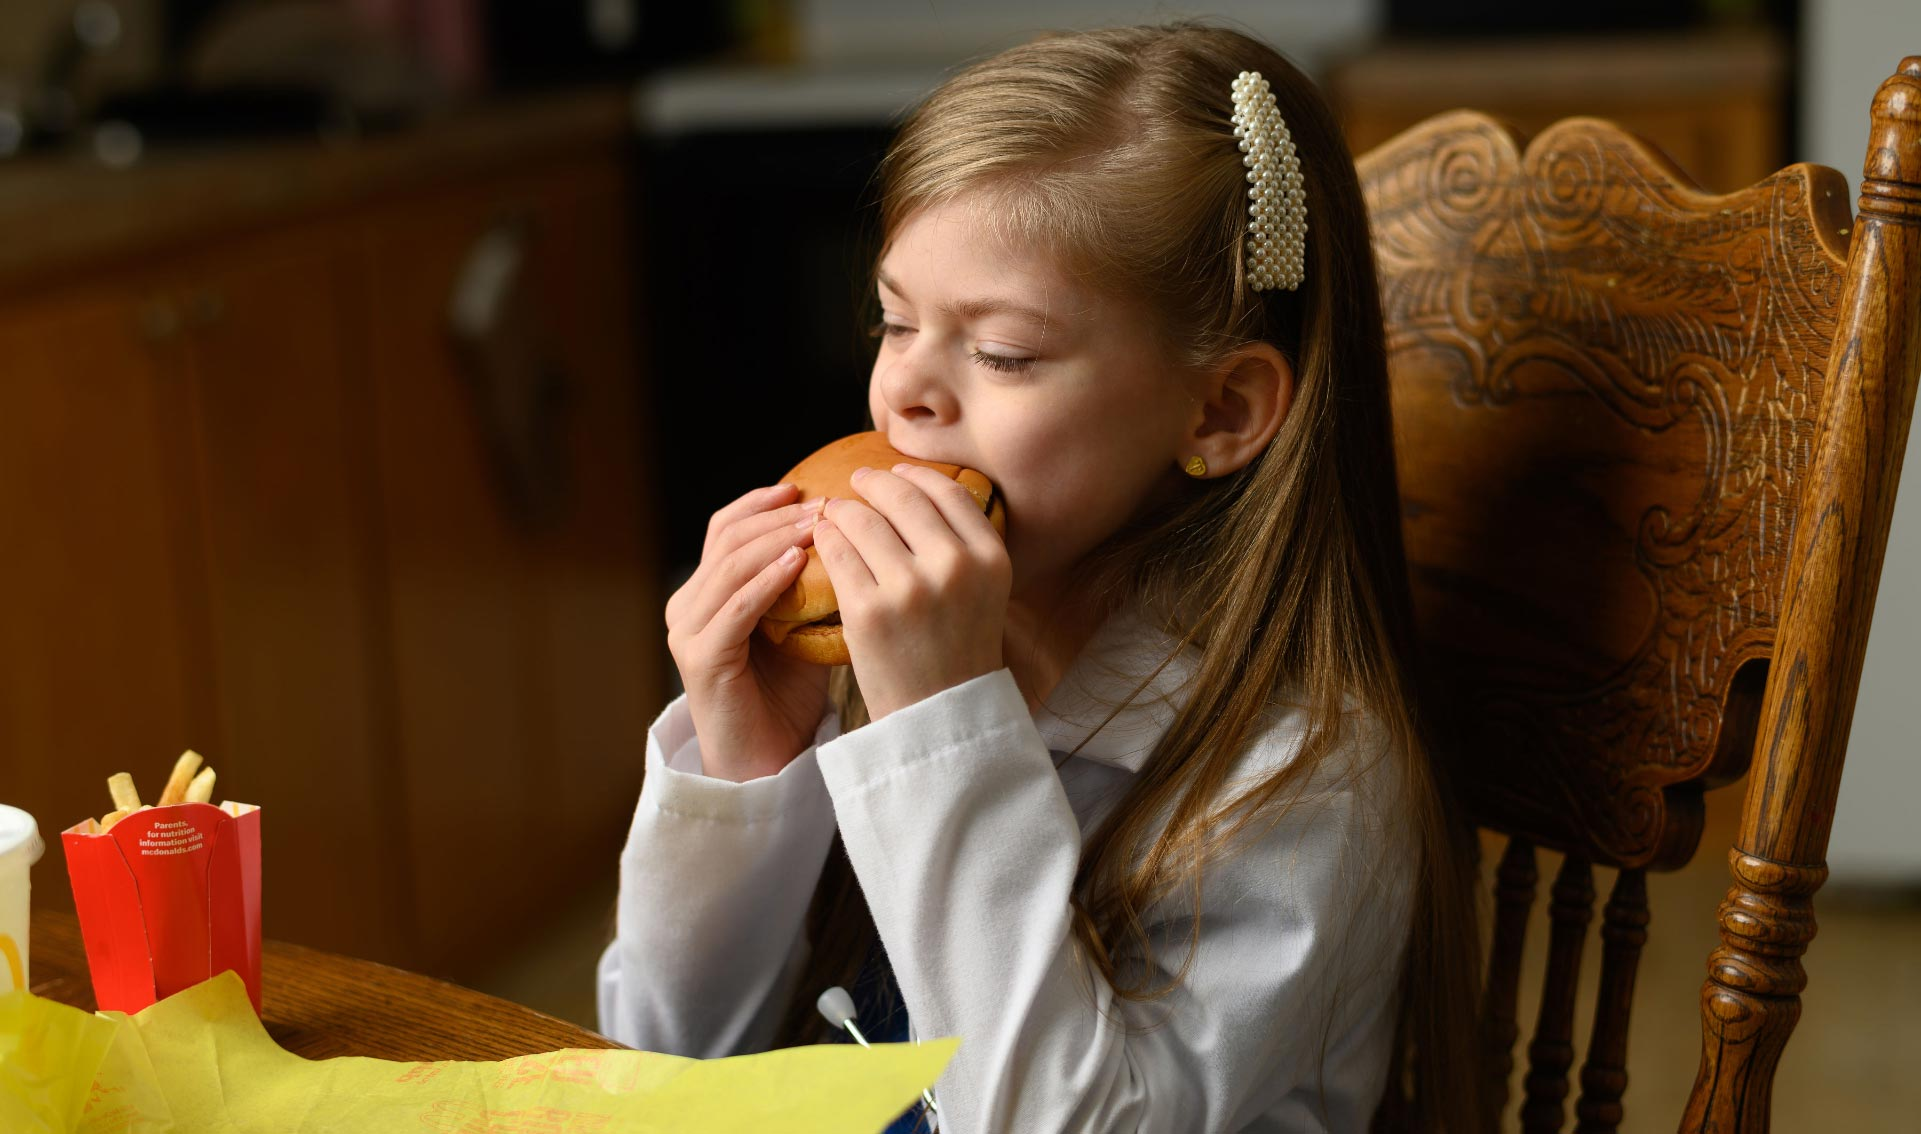 Taytum chomps down on a McDonald's cheeseburger, held in both hands. She is still wearing her white coat and scrubs.